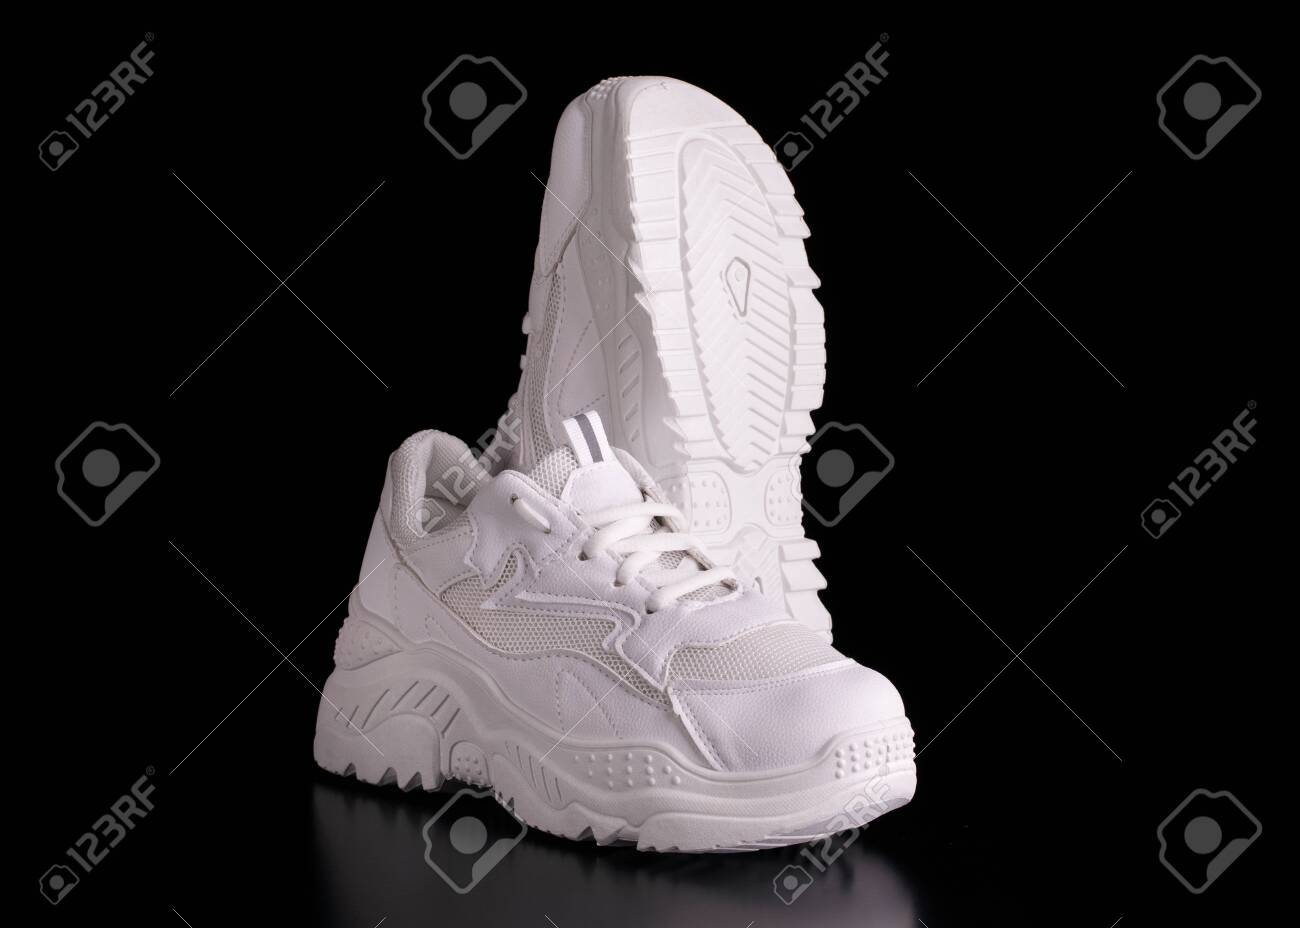 Black Background. Fashionable Sneakers